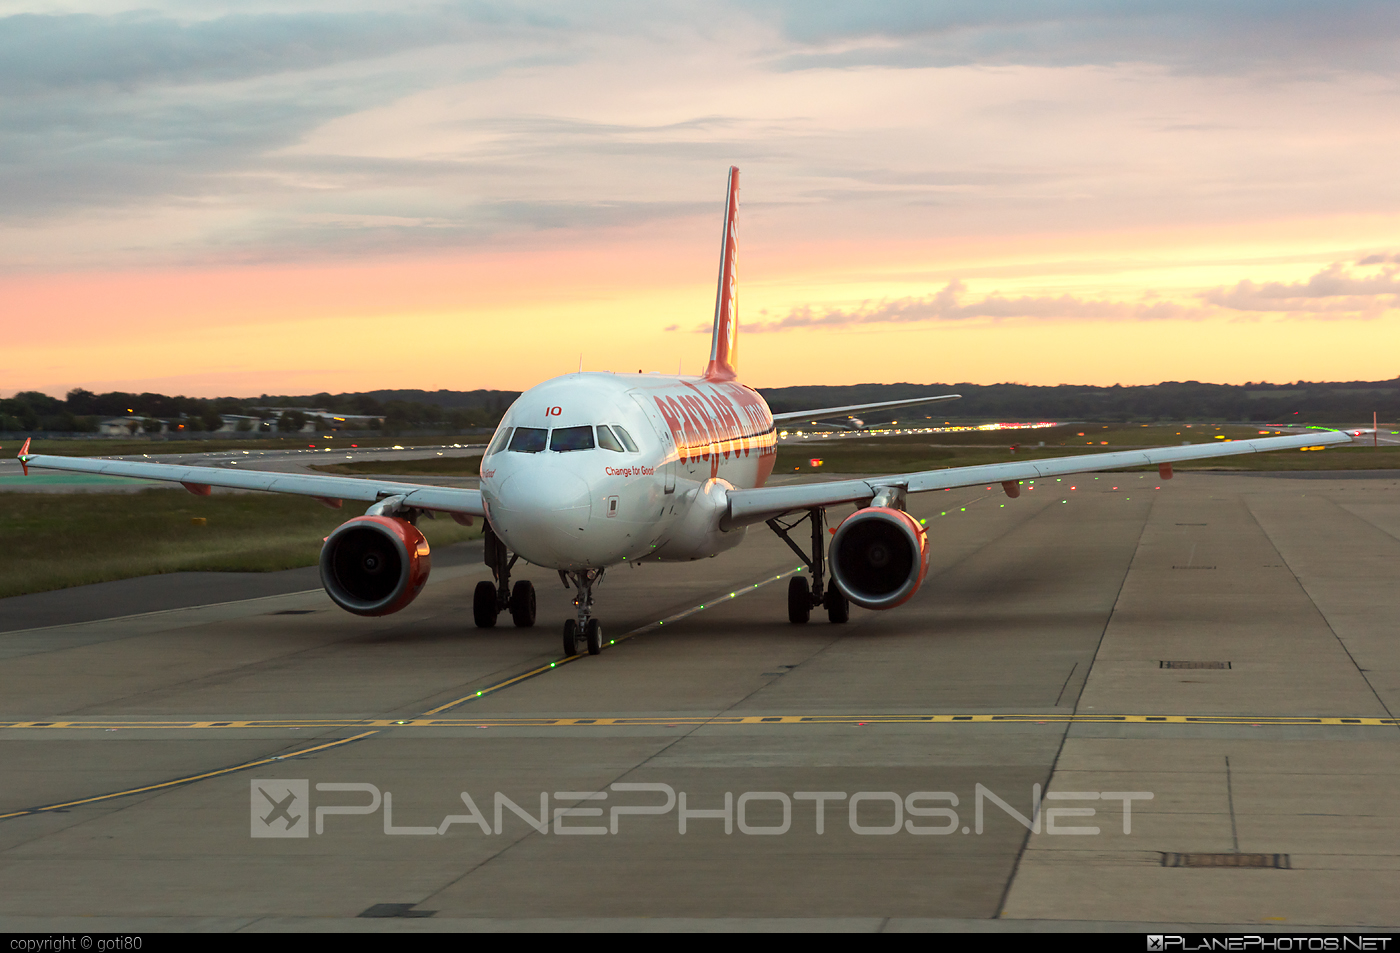 Airbus A319-111 - G-EZIO operated by easyJet #a319 #a320family #airbus #airbus319 #easyjet